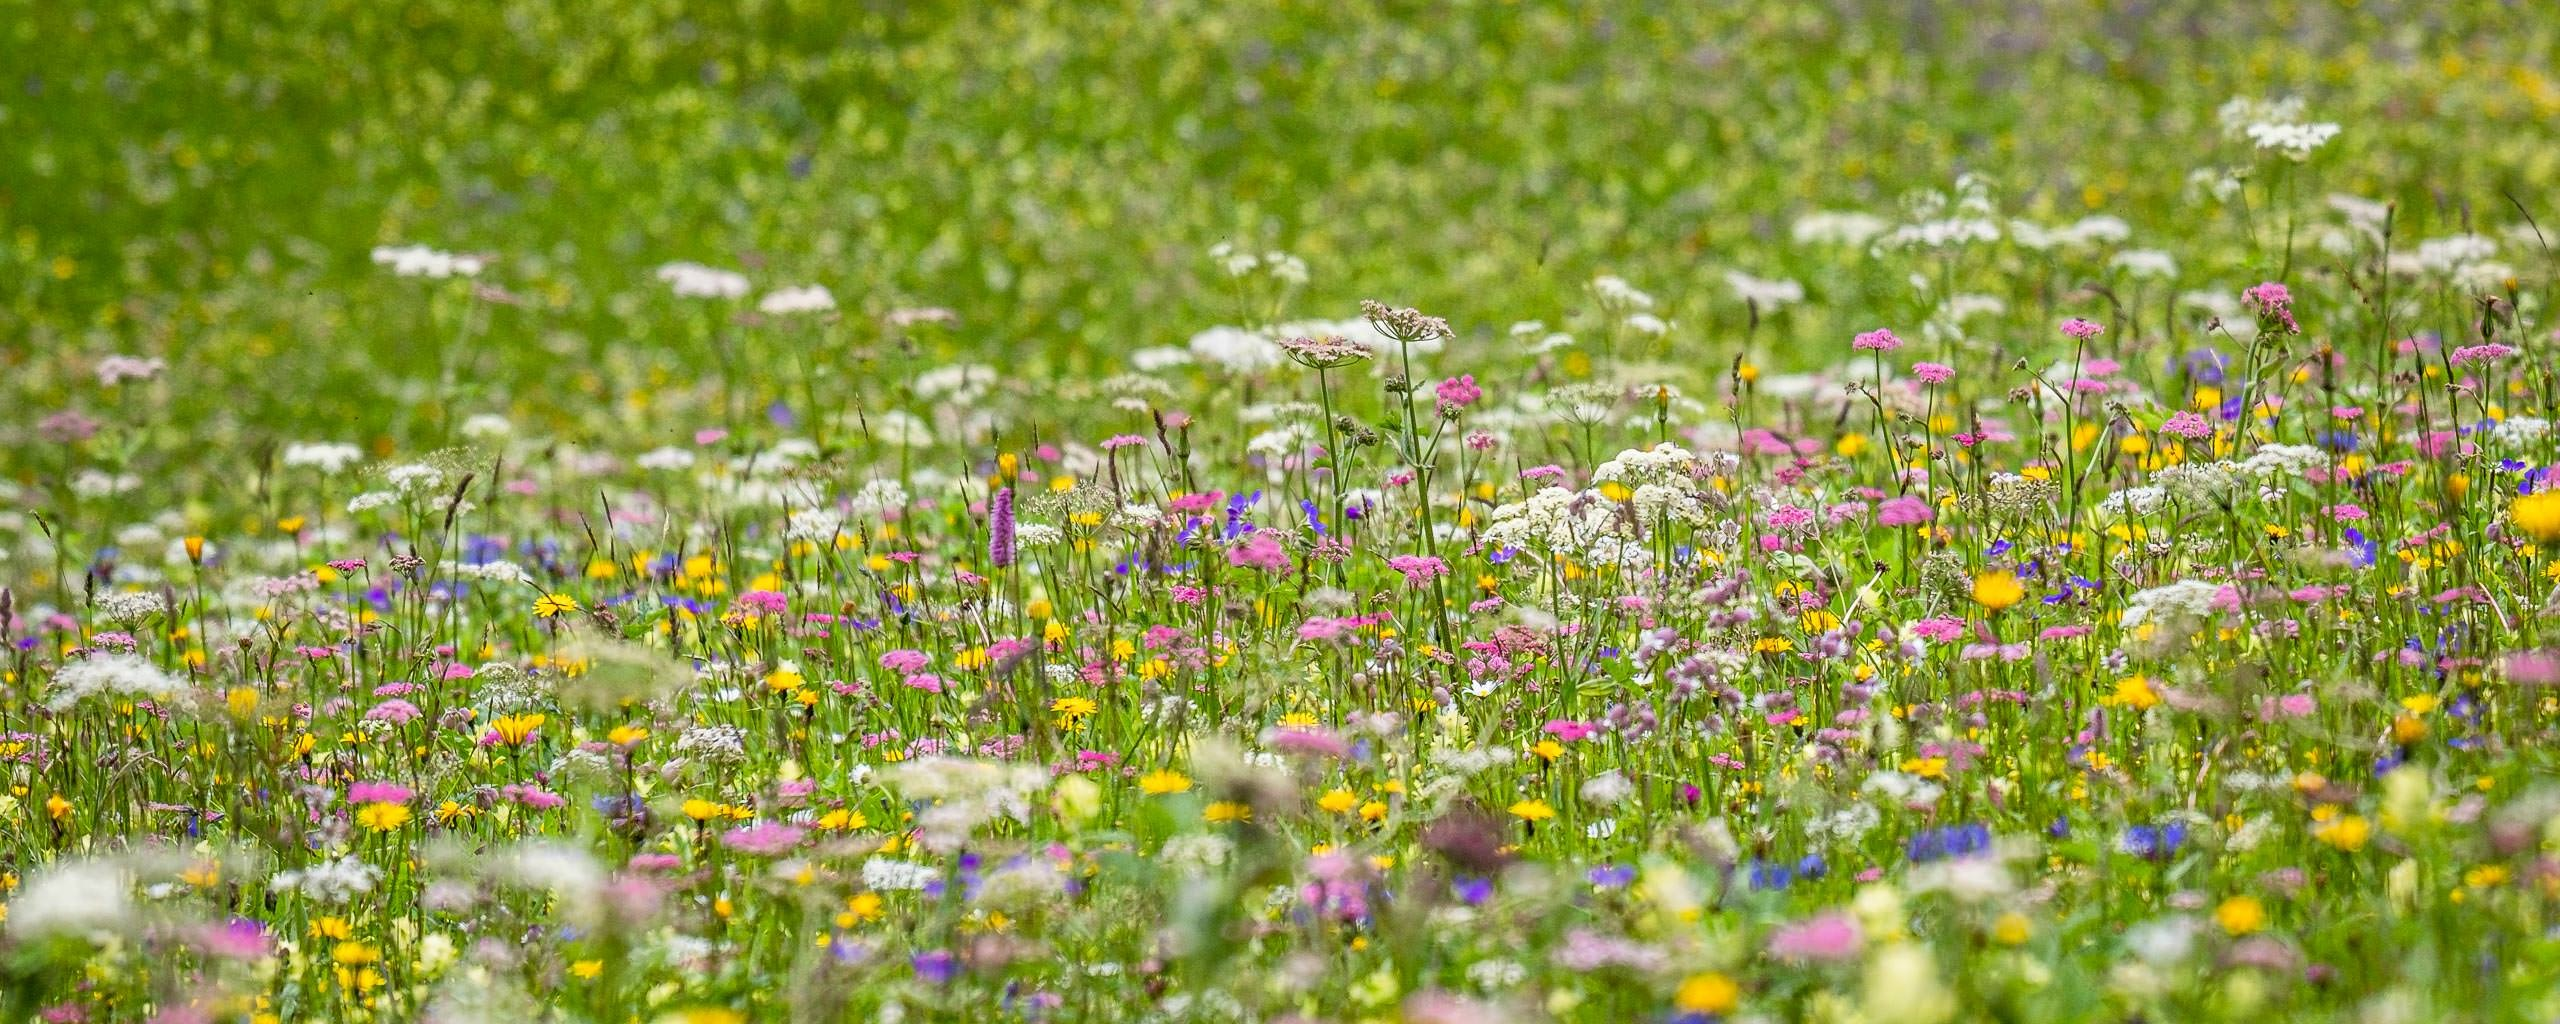 Meadow at Eggboden (Grindelwald)